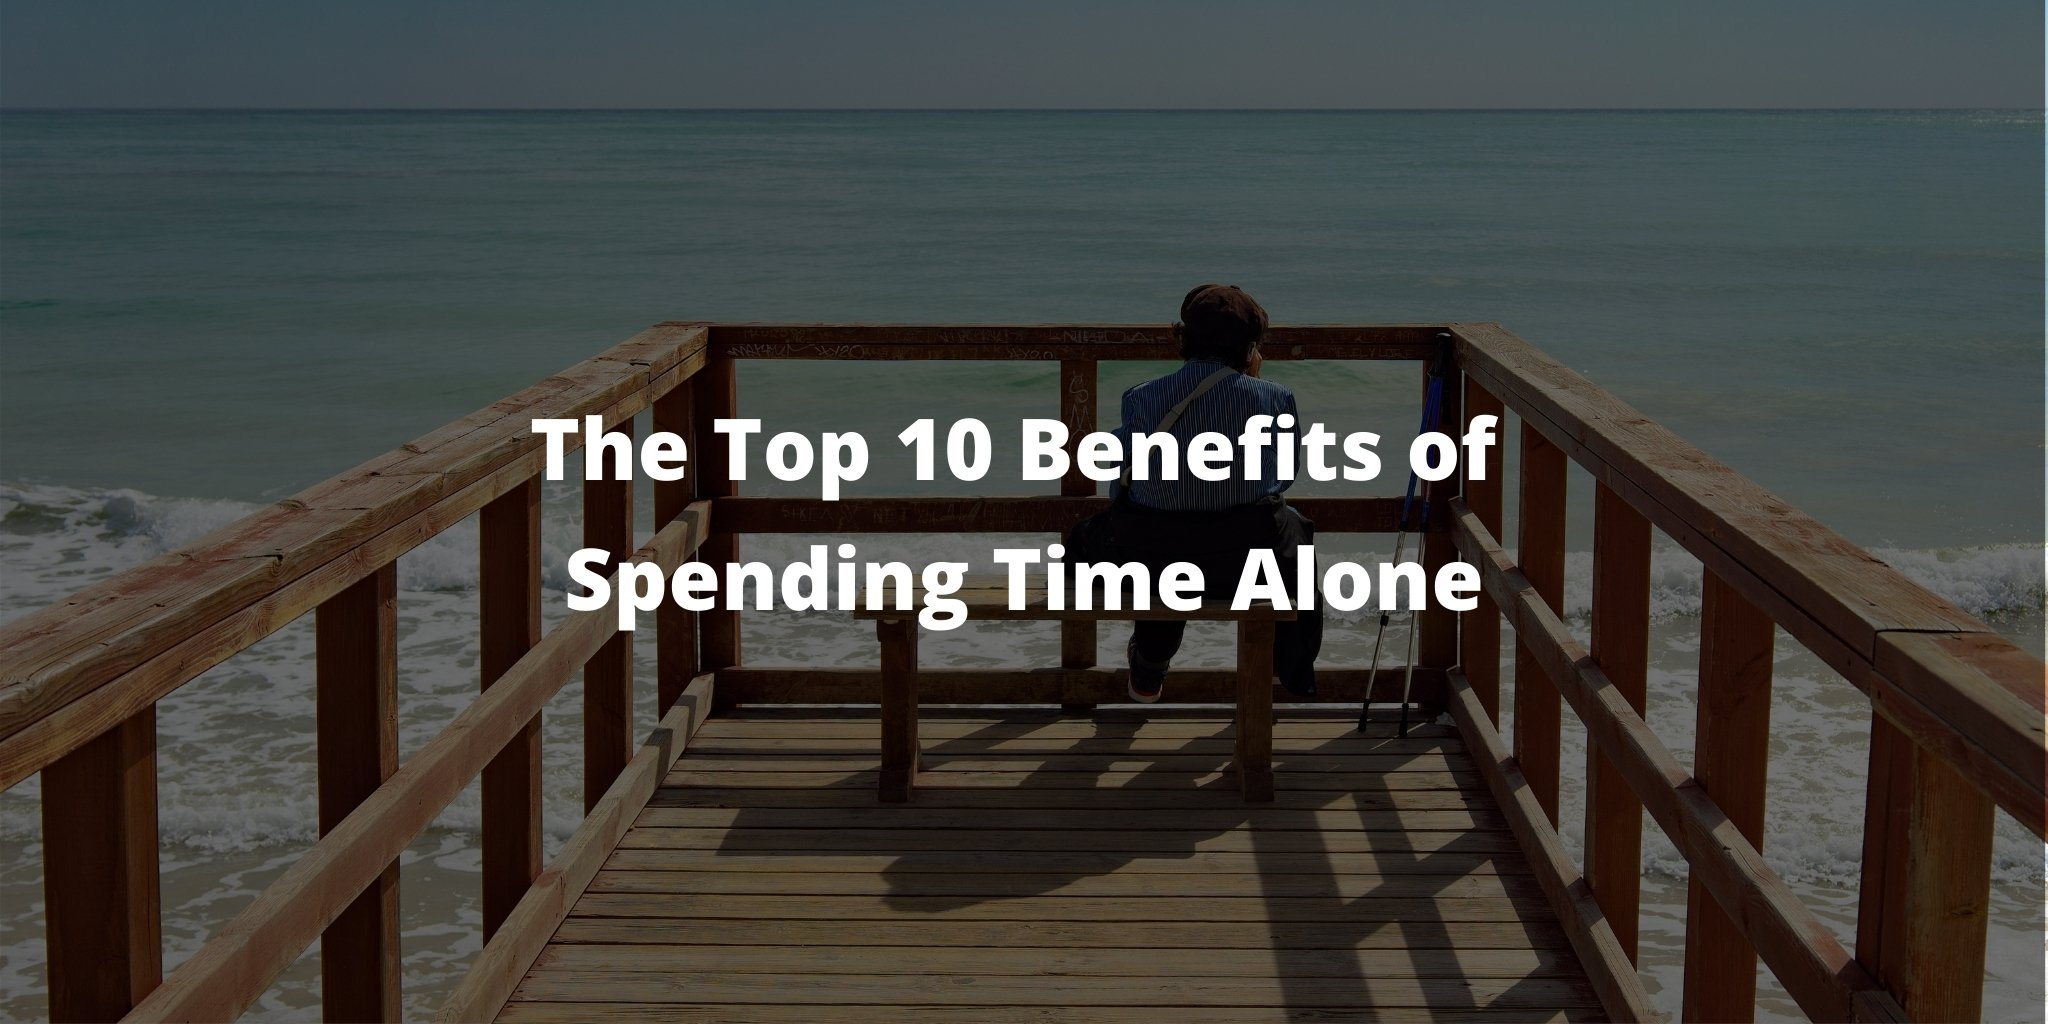 The Top 10 Benefits of Spending Time Alone